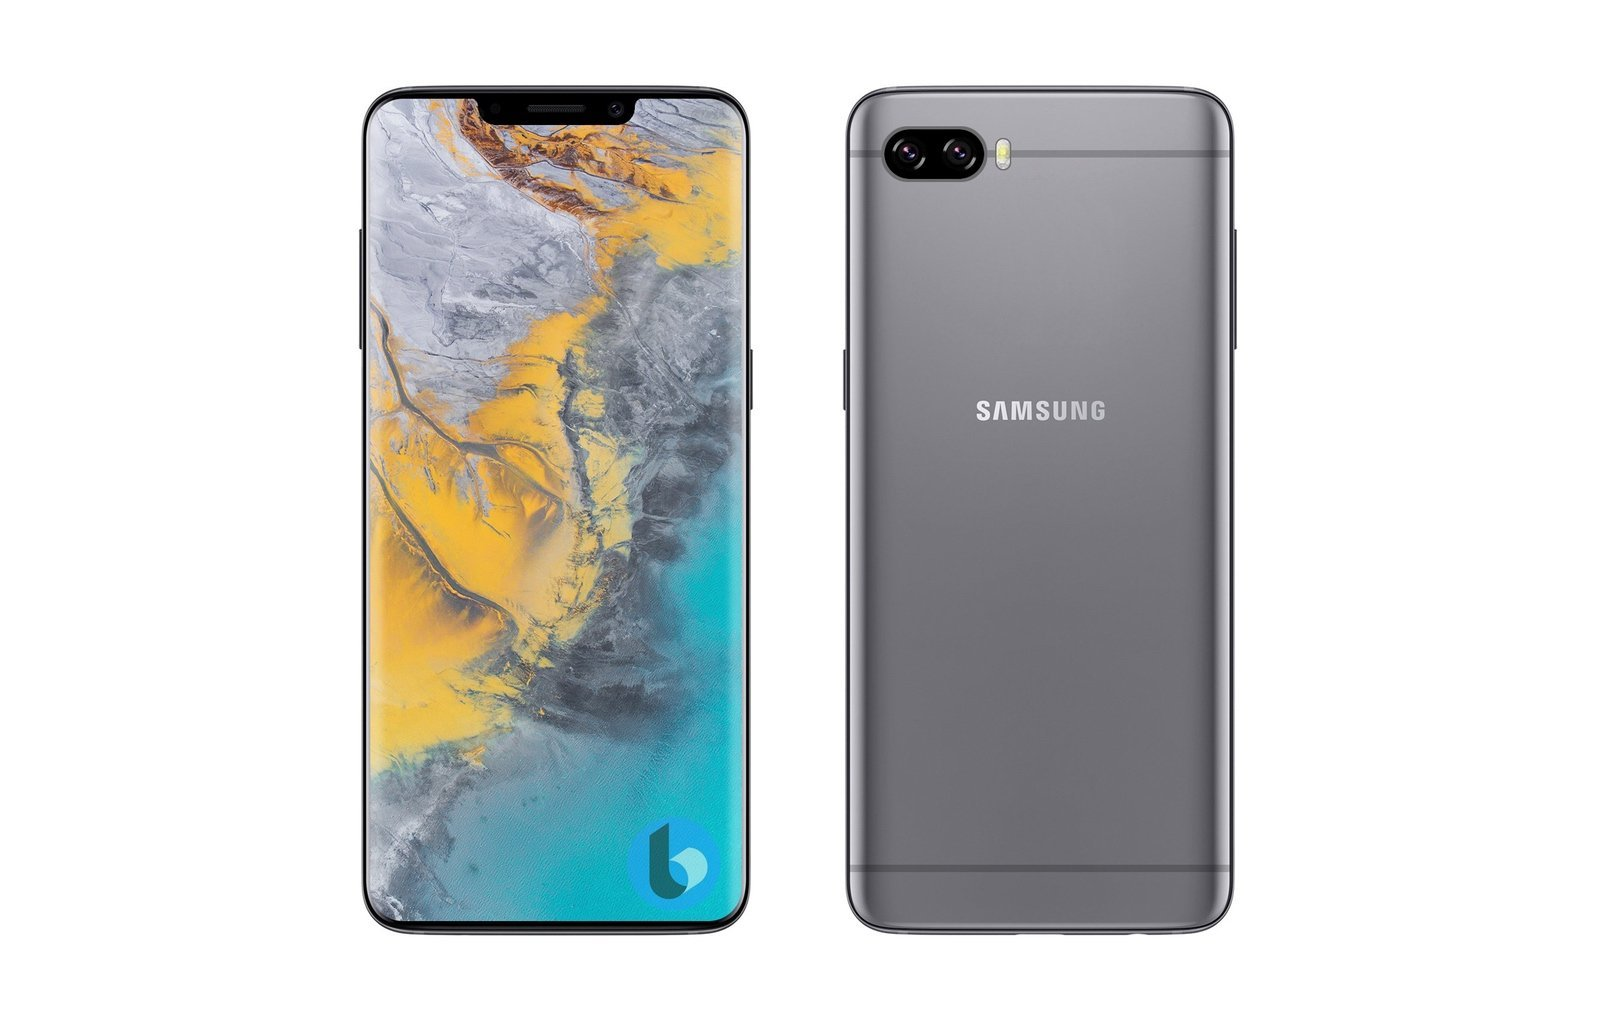 Samsung Galaxy S10 : un artiste l'imagine avec une encoche